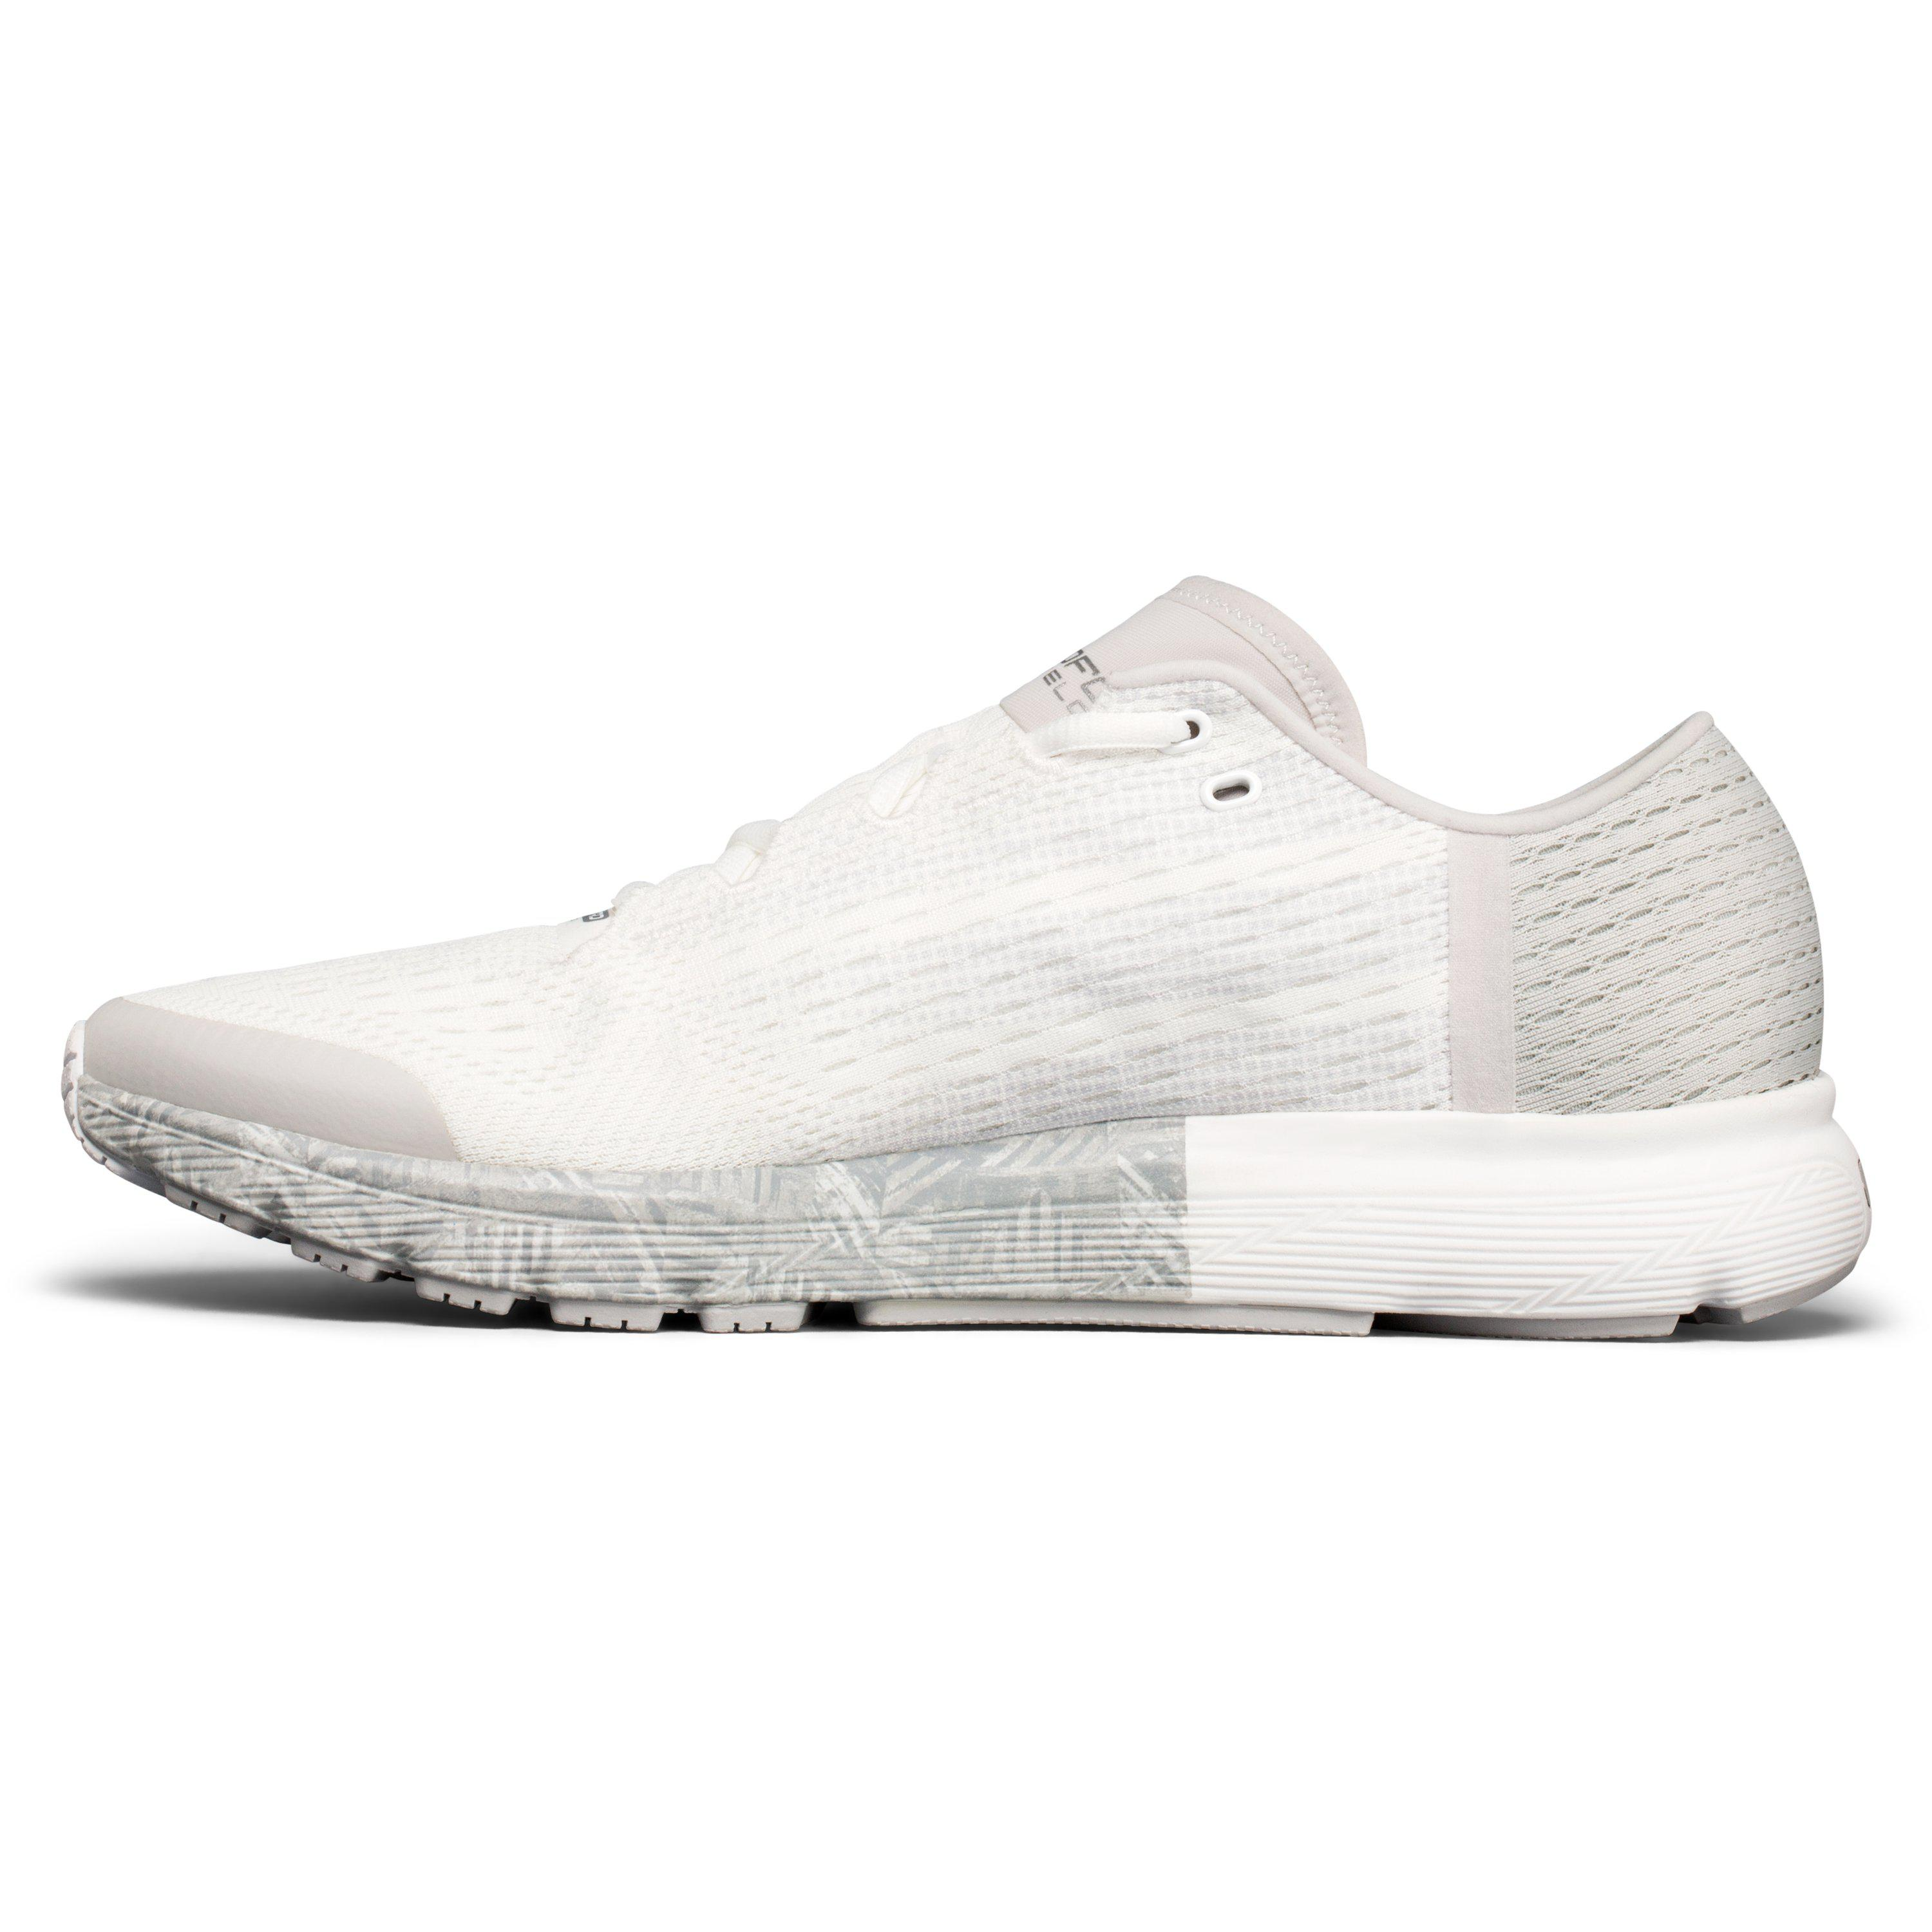 pretty nice 4ae4e 4740d Under Armour White Men's Ua Speedform® Velociti Record-equipped Running  Shoes for men